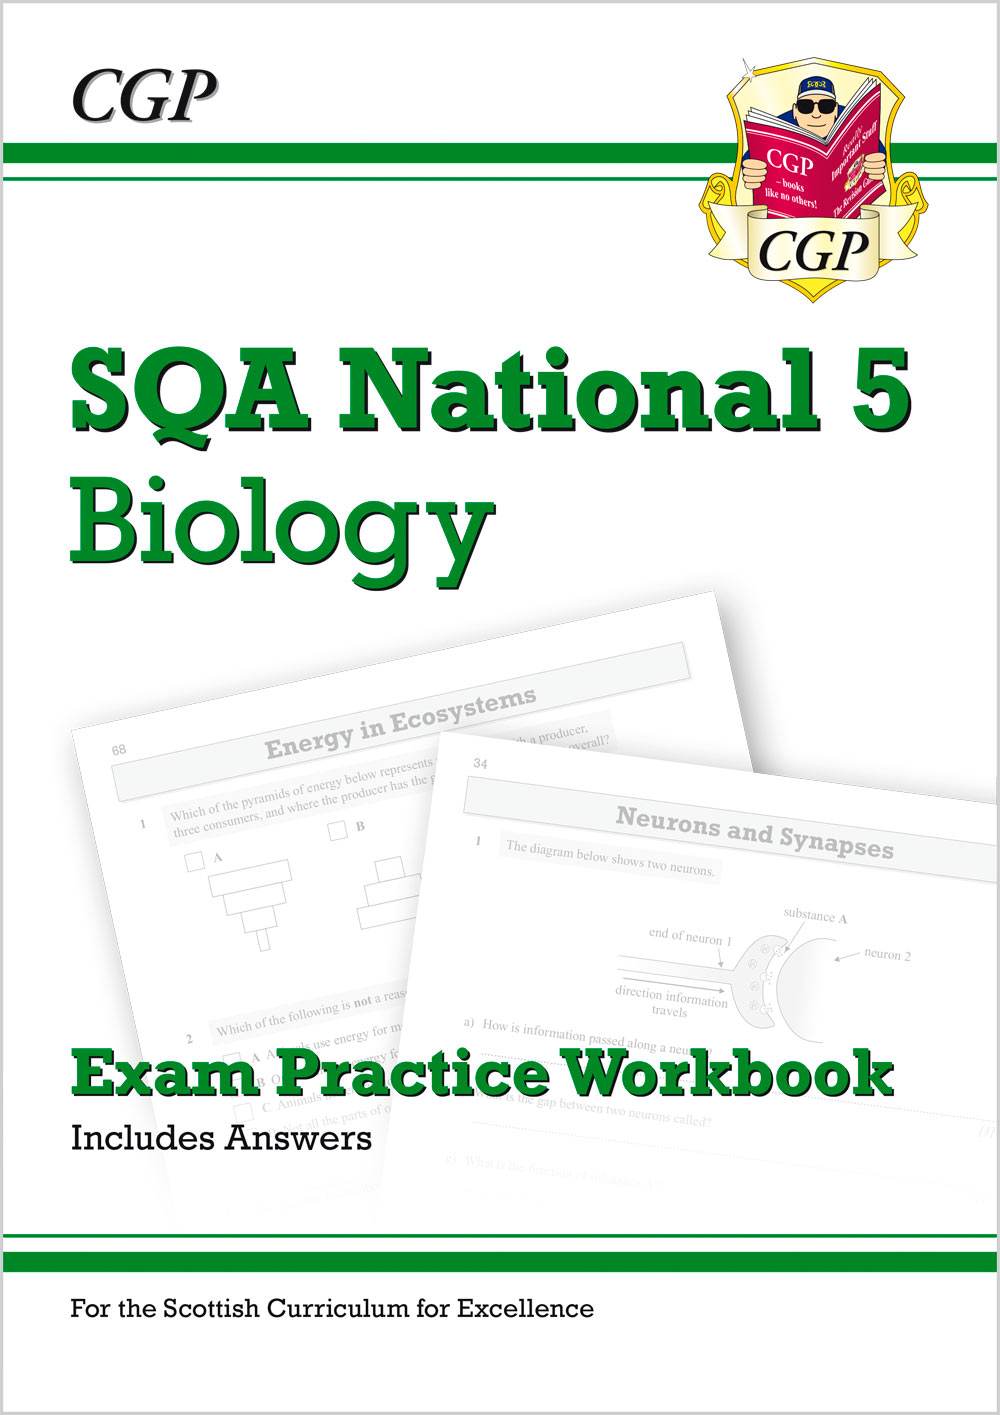 BZQ41 - National 5 Biology: SQA Exam Practice Workbook - includes Answers